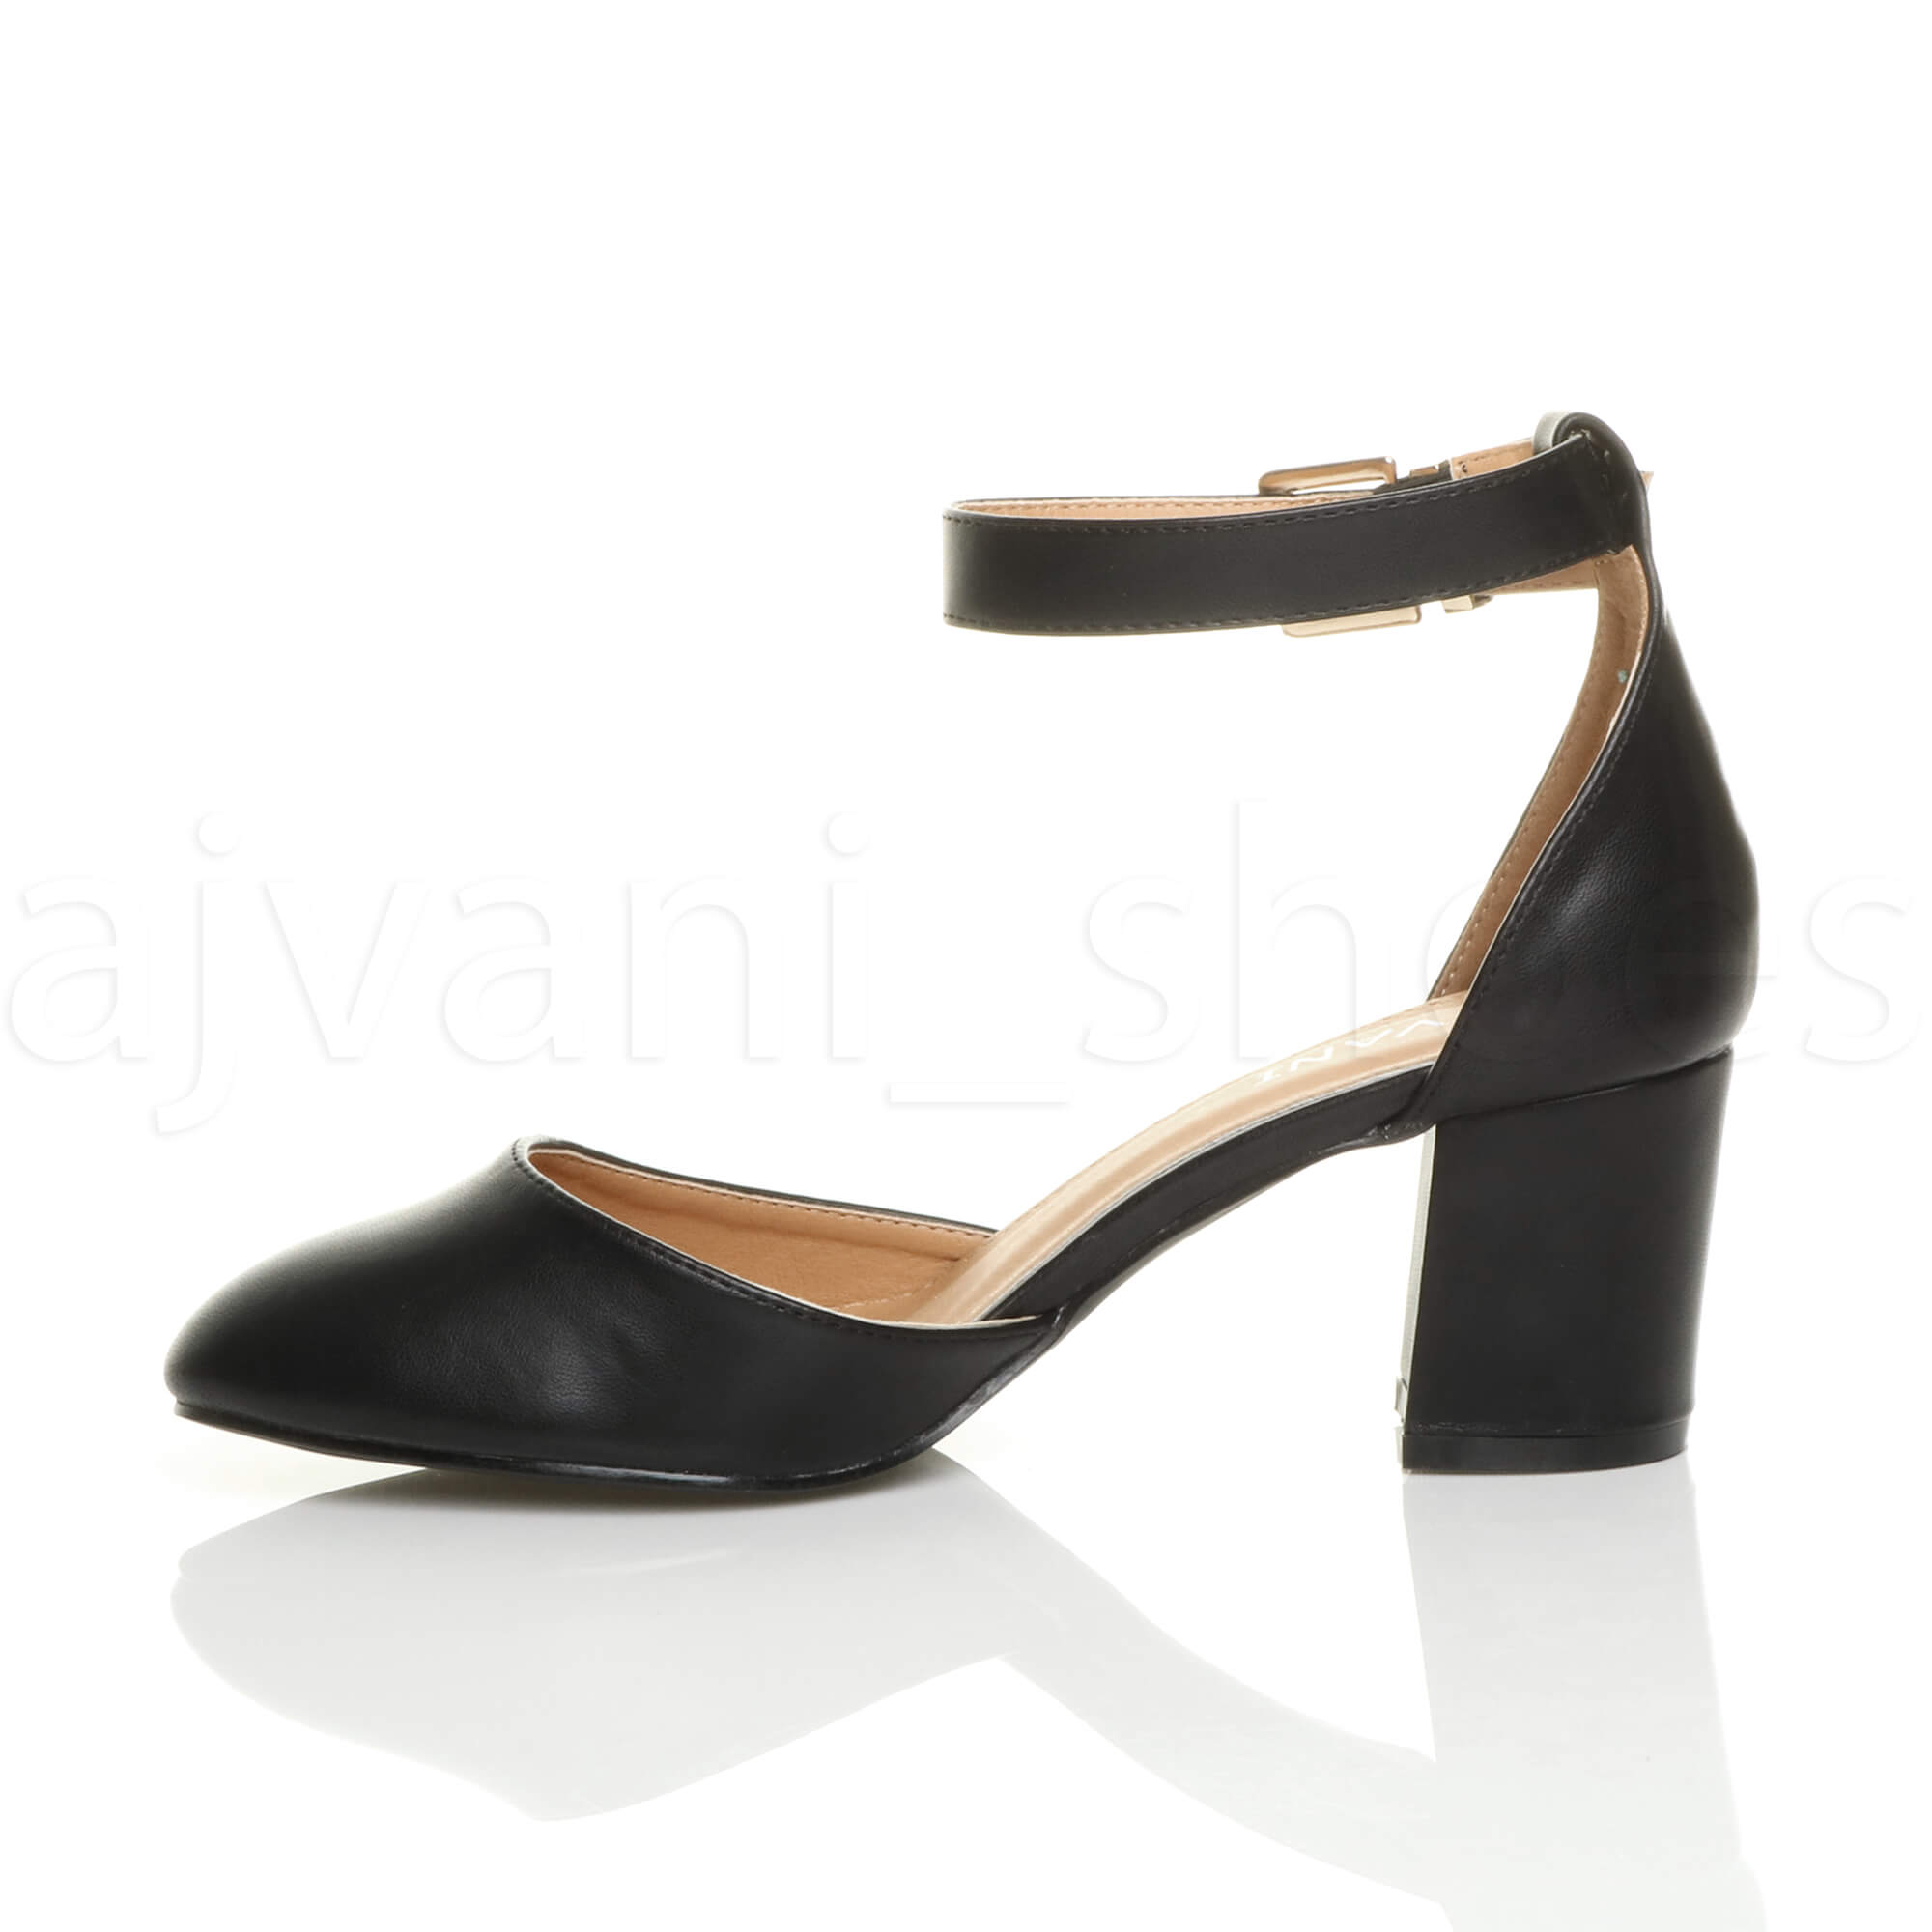 WOMENS-LADIES-LOW-MID-BLOCK-HEEL-ANKLE-STRAP-MARY-JANE-COURT-SHOES-SANDALS-SIZE thumbnail 4